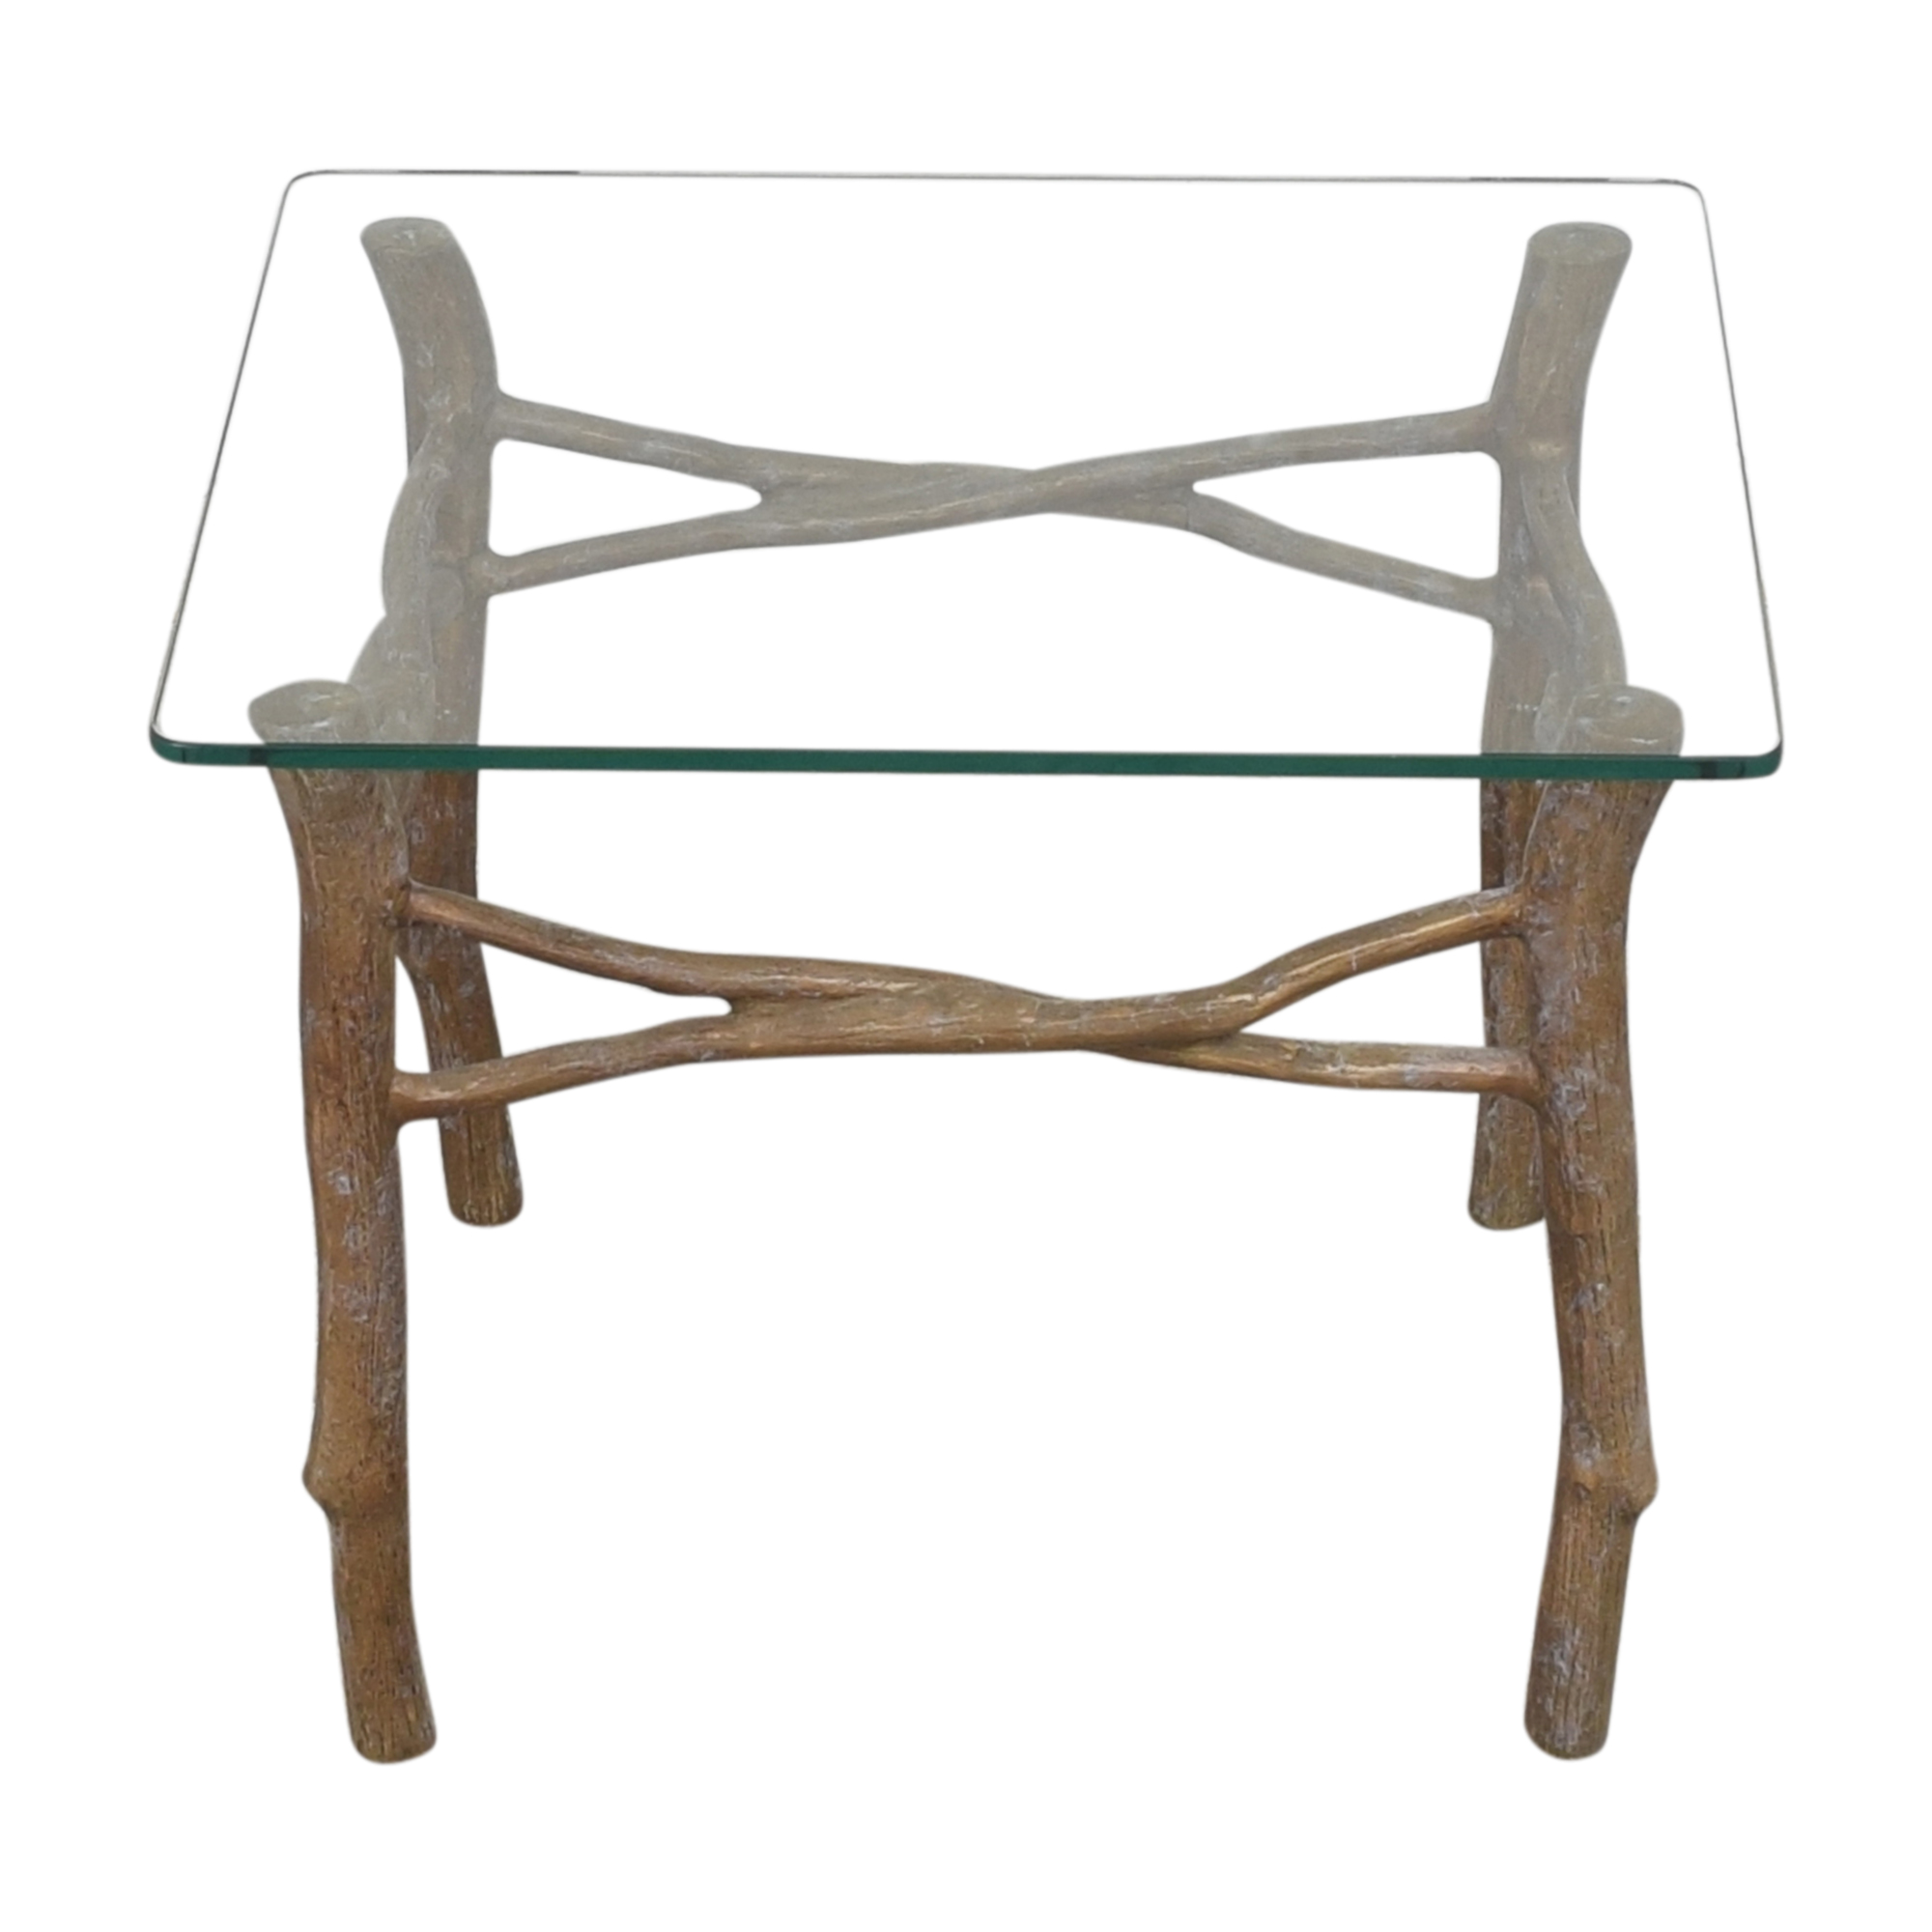 Branch Leg Accent Table / Accent Tables